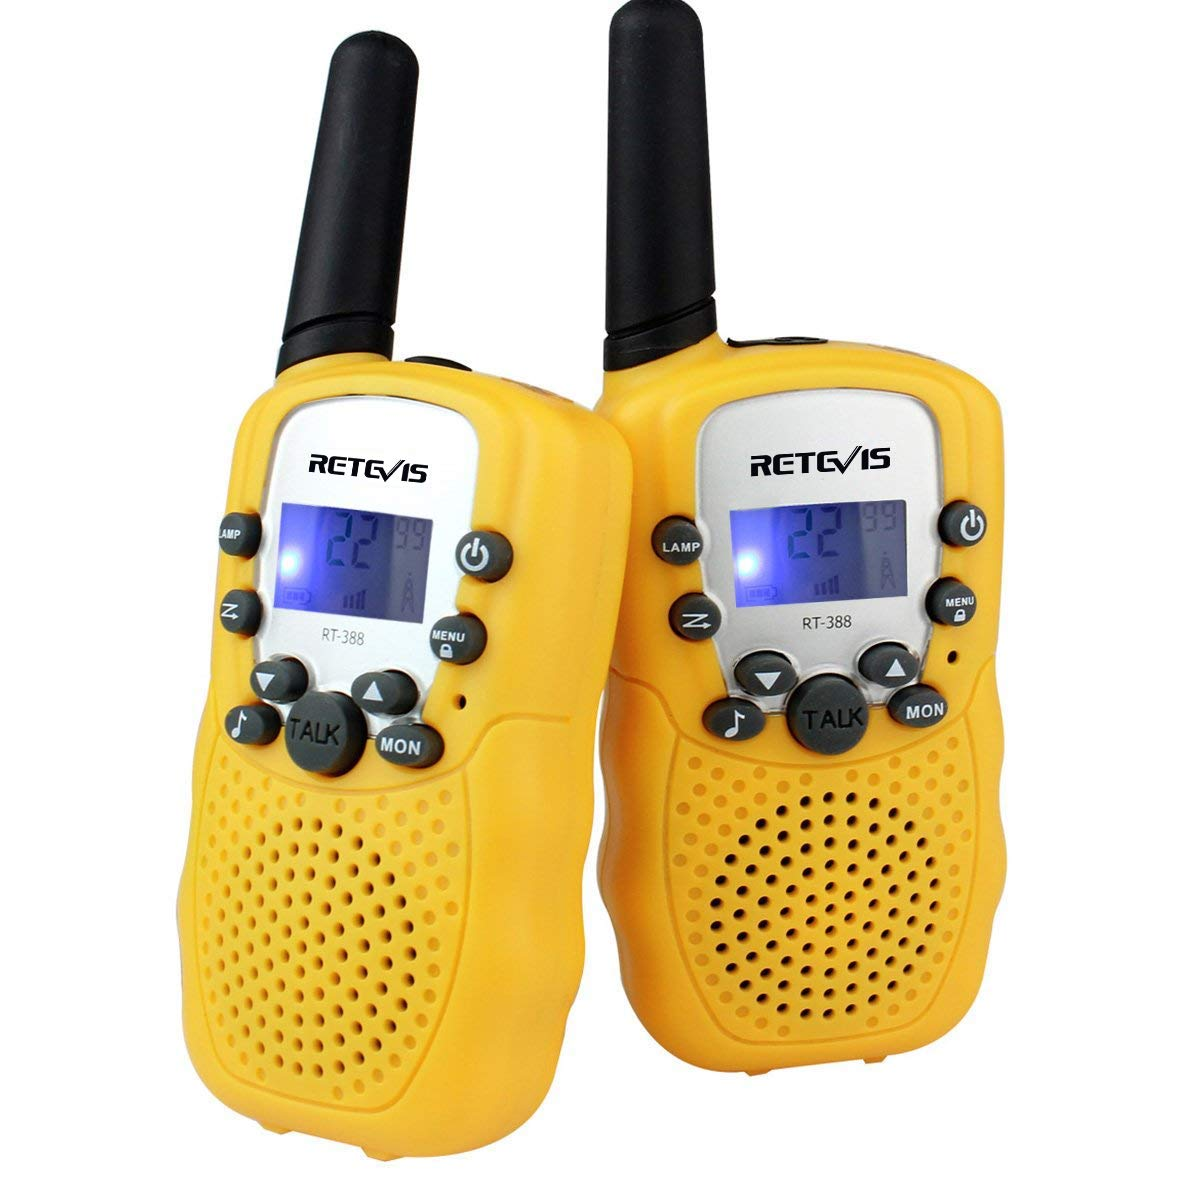 Retevis RT-388 Kids Walkie Talkies FRS 22CH LCD Display Walkie Talkies for Kids(Yellow,1 Pair)